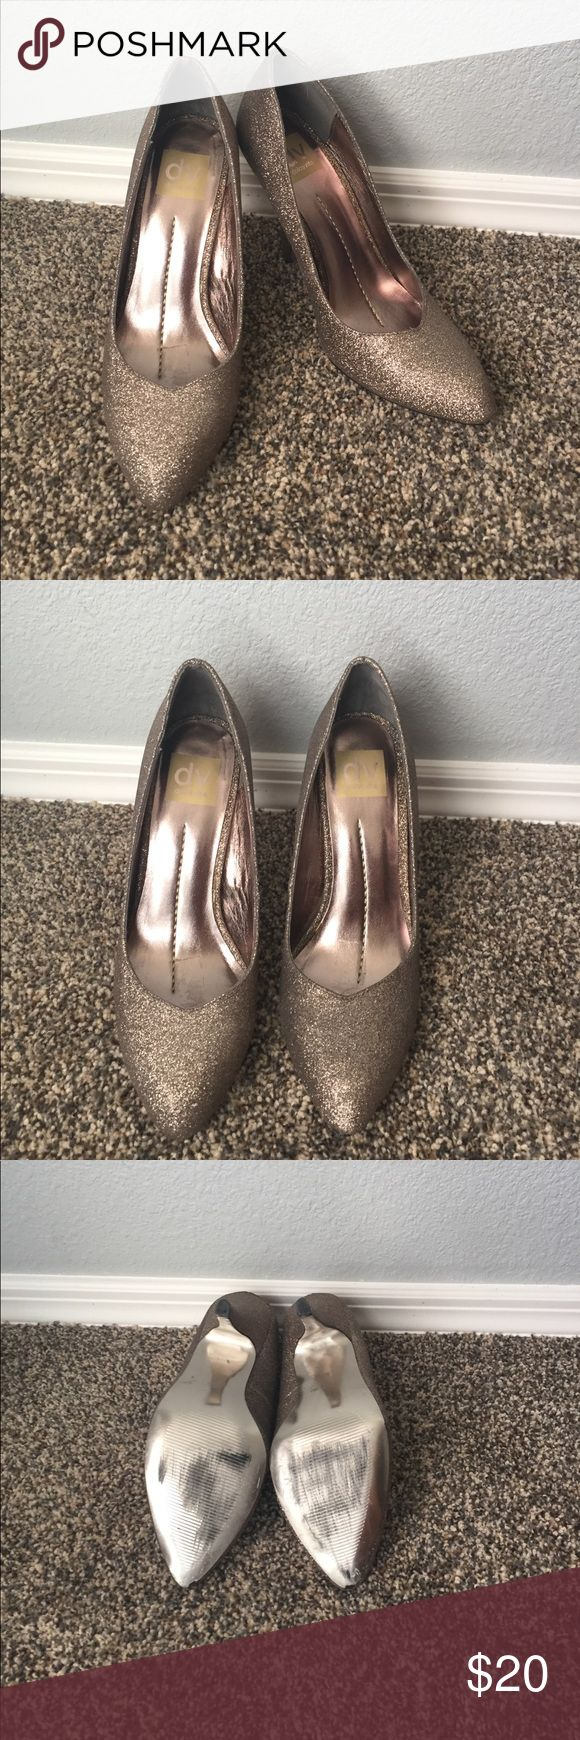 DV by Dolce Vita metallic pumps. DV by Dolce Vita metallic pumps. Size 7 worn once. Griege metallic shimmer color. 🚫 trades. DV by Dolce Vita Shoes Heels